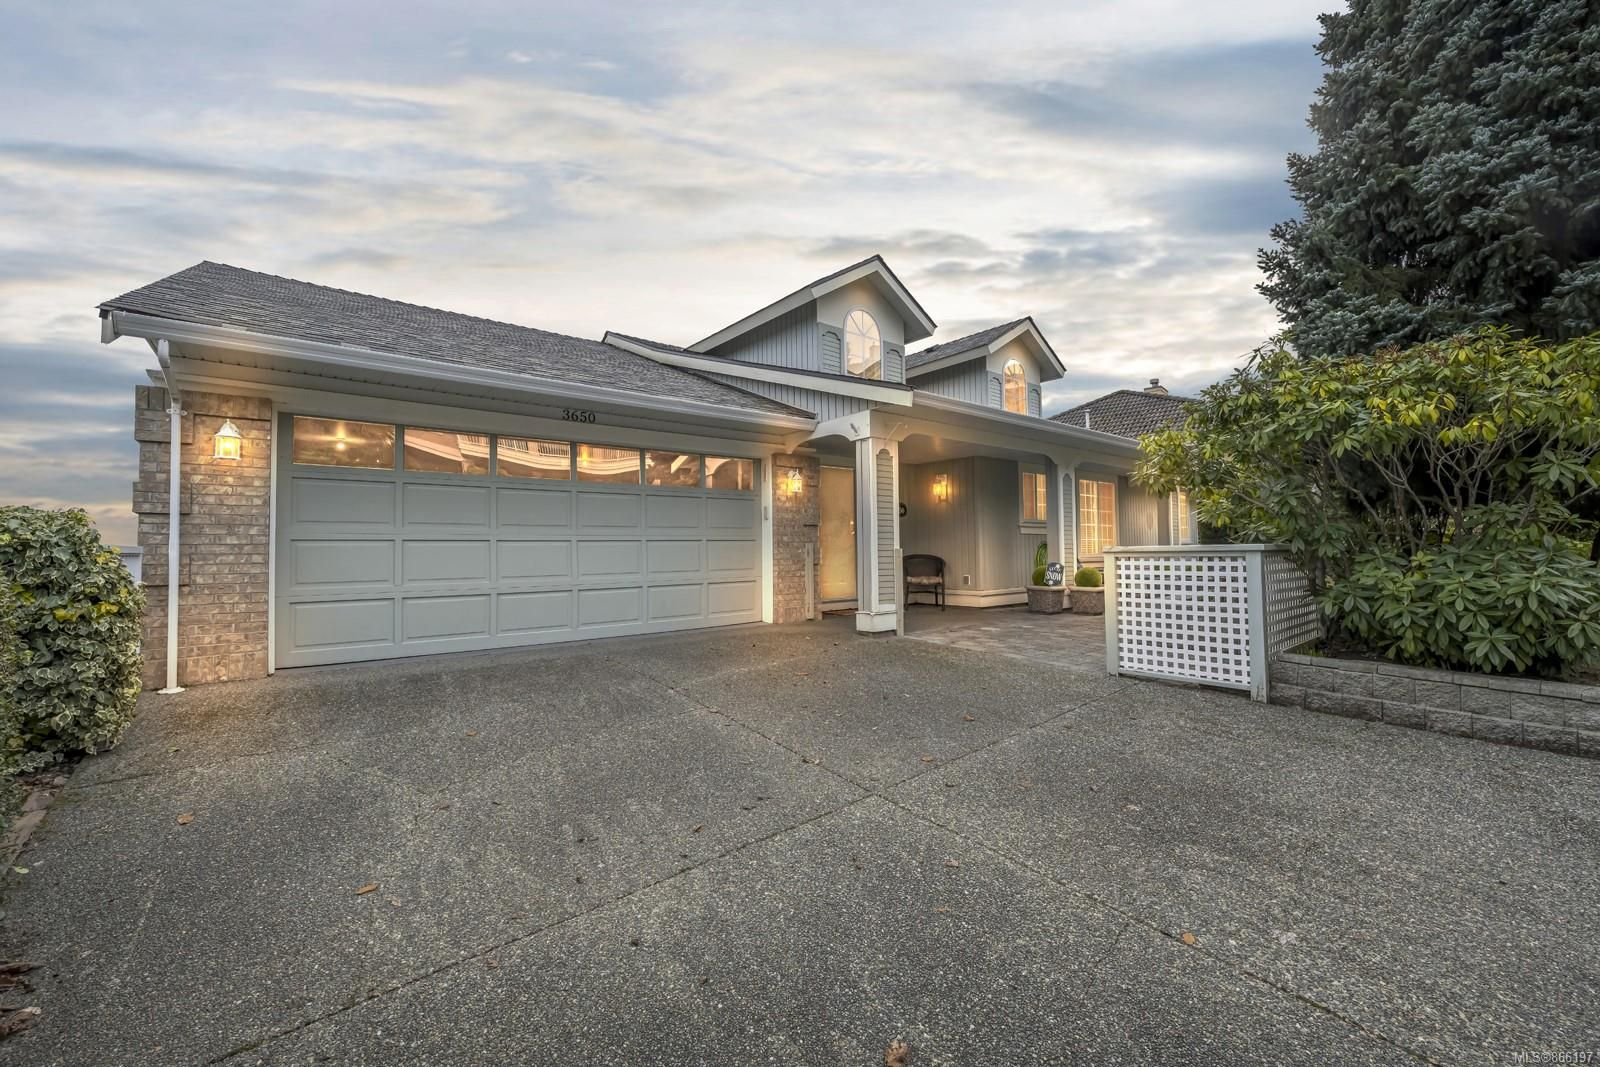 Main Photo: 3650 Ocean View Cres in : ML Cobble Hill House for sale (Malahat & Area)  : MLS®# 866197